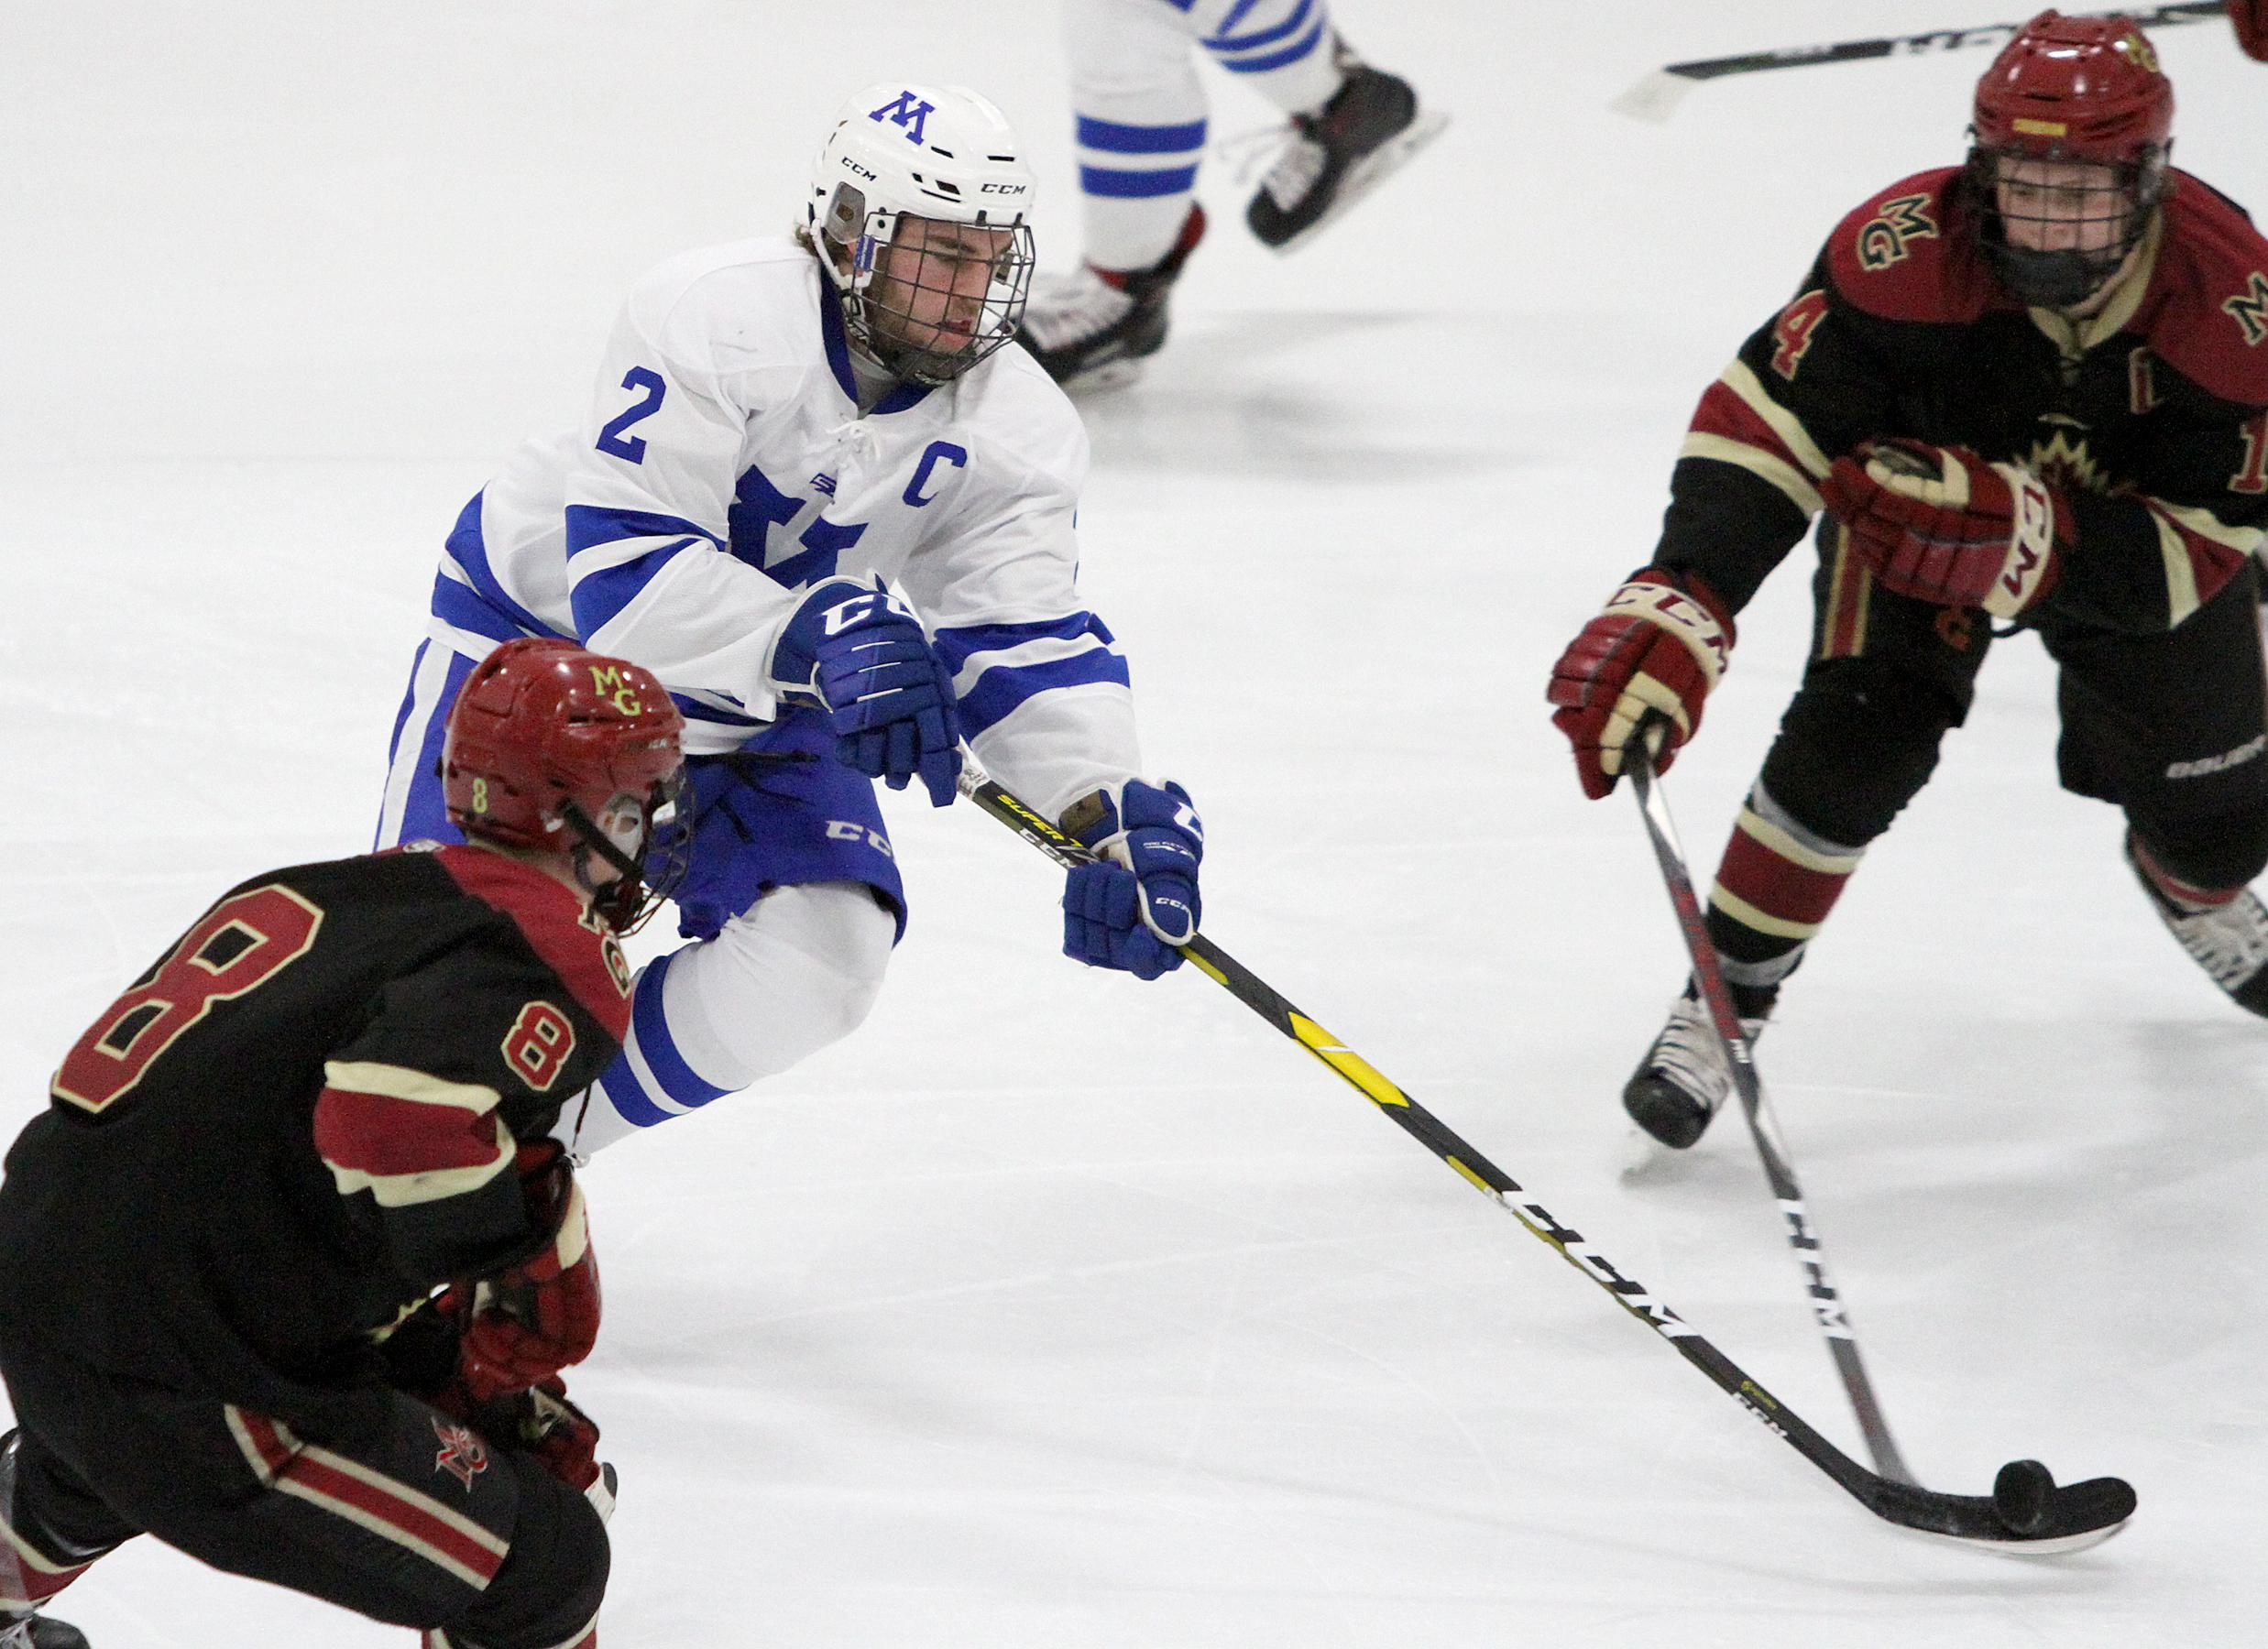 Minnetonka senior captain Grant Docter finished with a goal and an assist in the Skippers' 5-2 win over Maple Grove. Photo by Drew Herron, SportsEngine